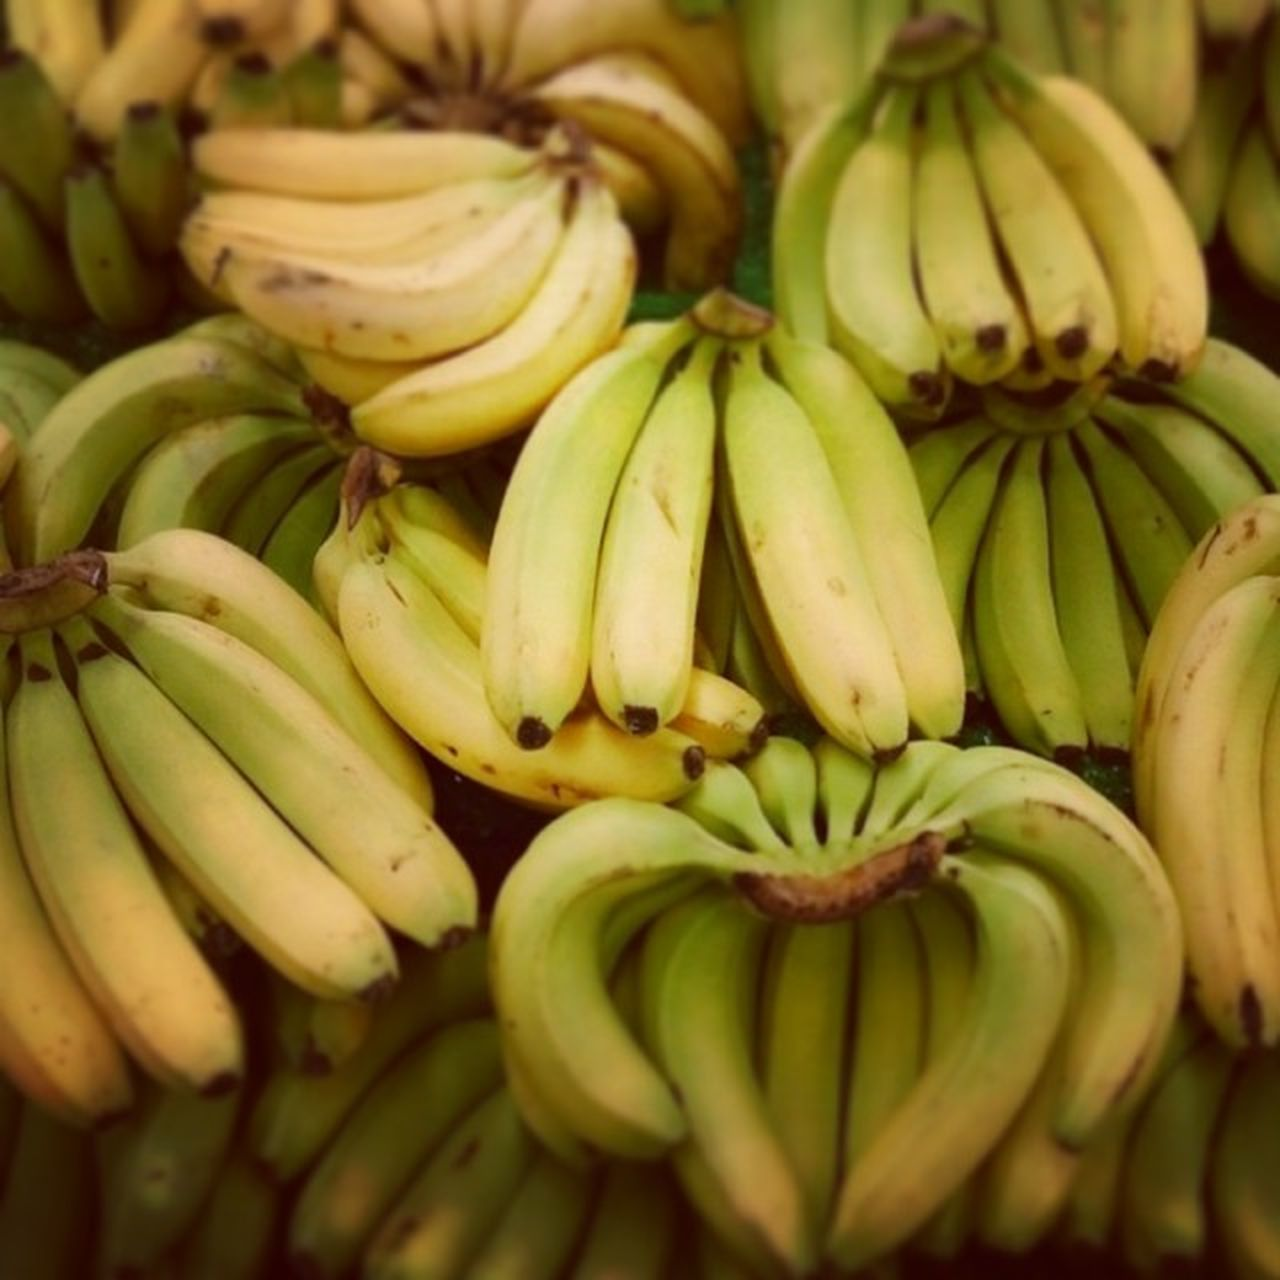 Pisang Banana Ilike Favourite Feveret Favorite Best  Nyumnyum Kusuka Apasaja Janjipisang